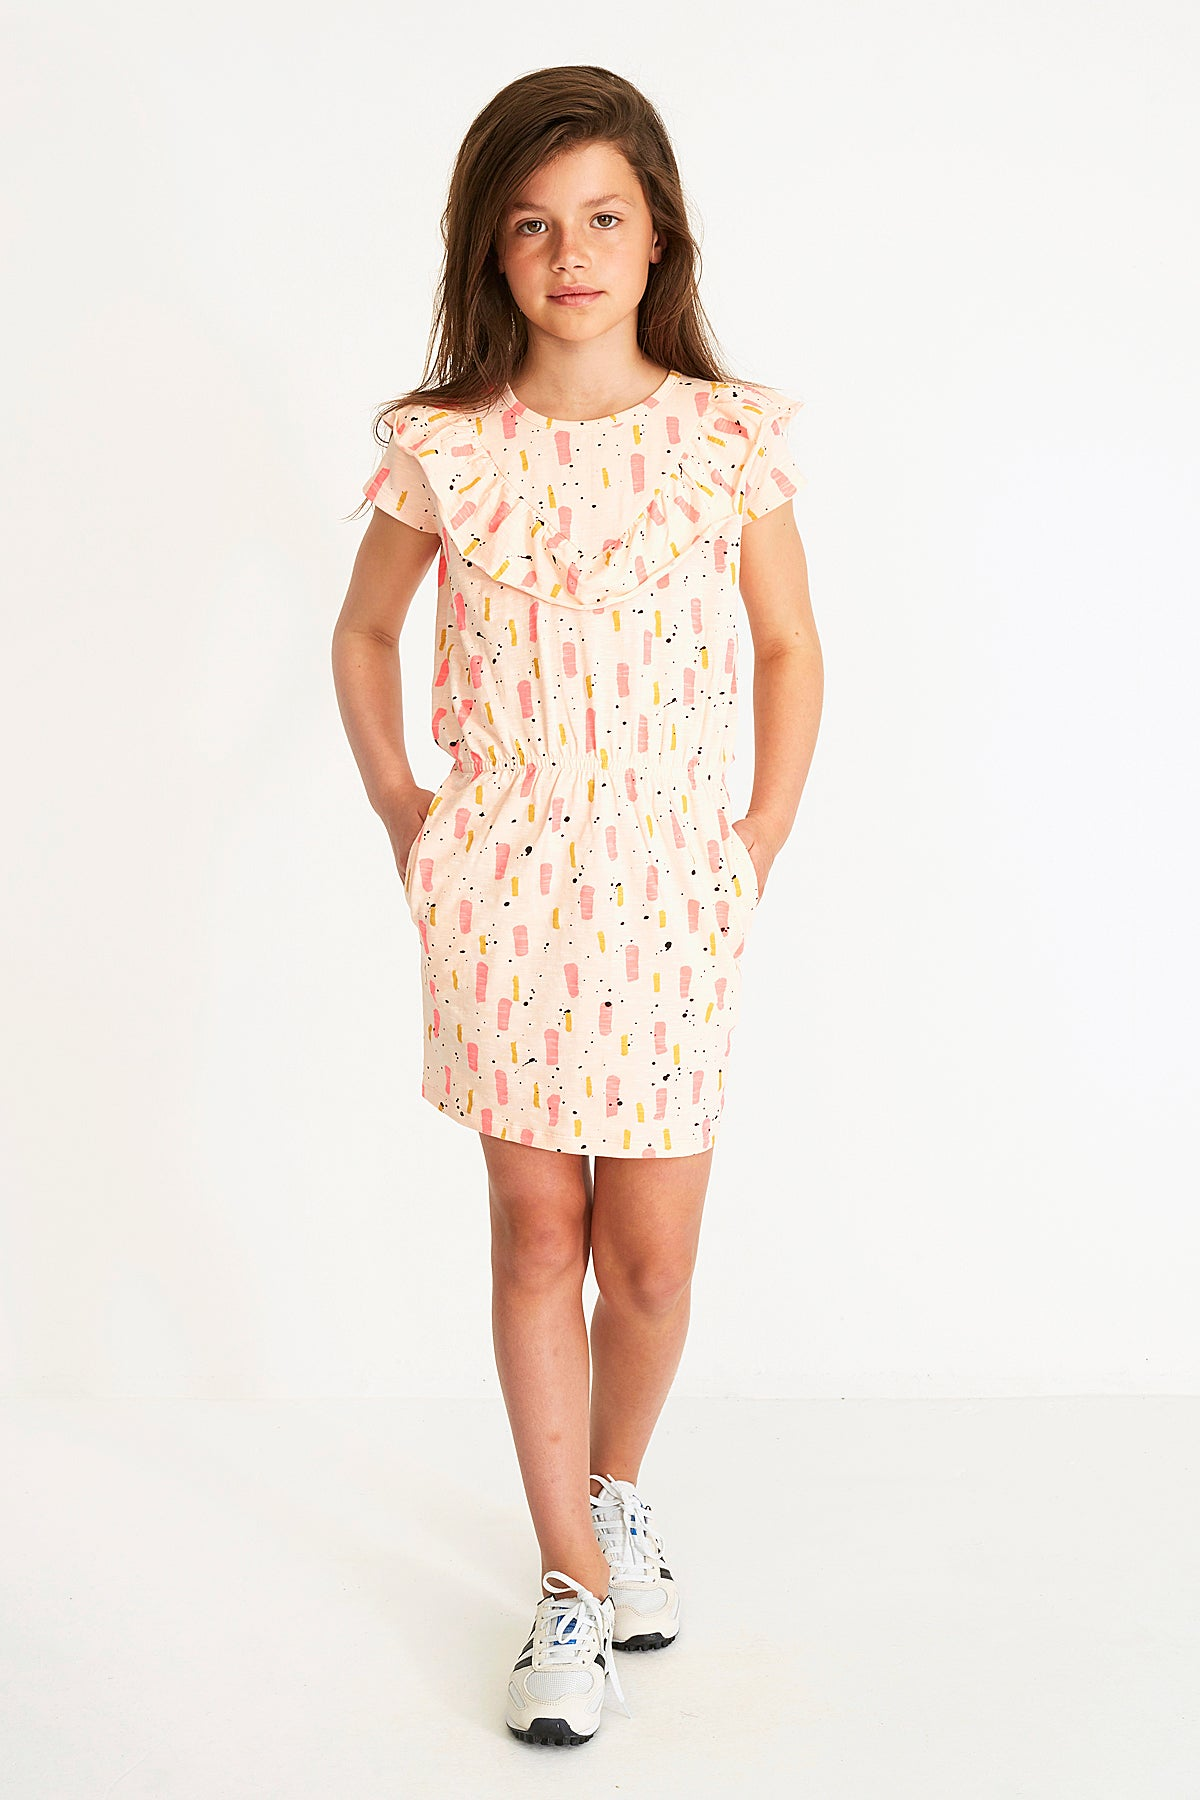 Soft Gallery Ariella Dress